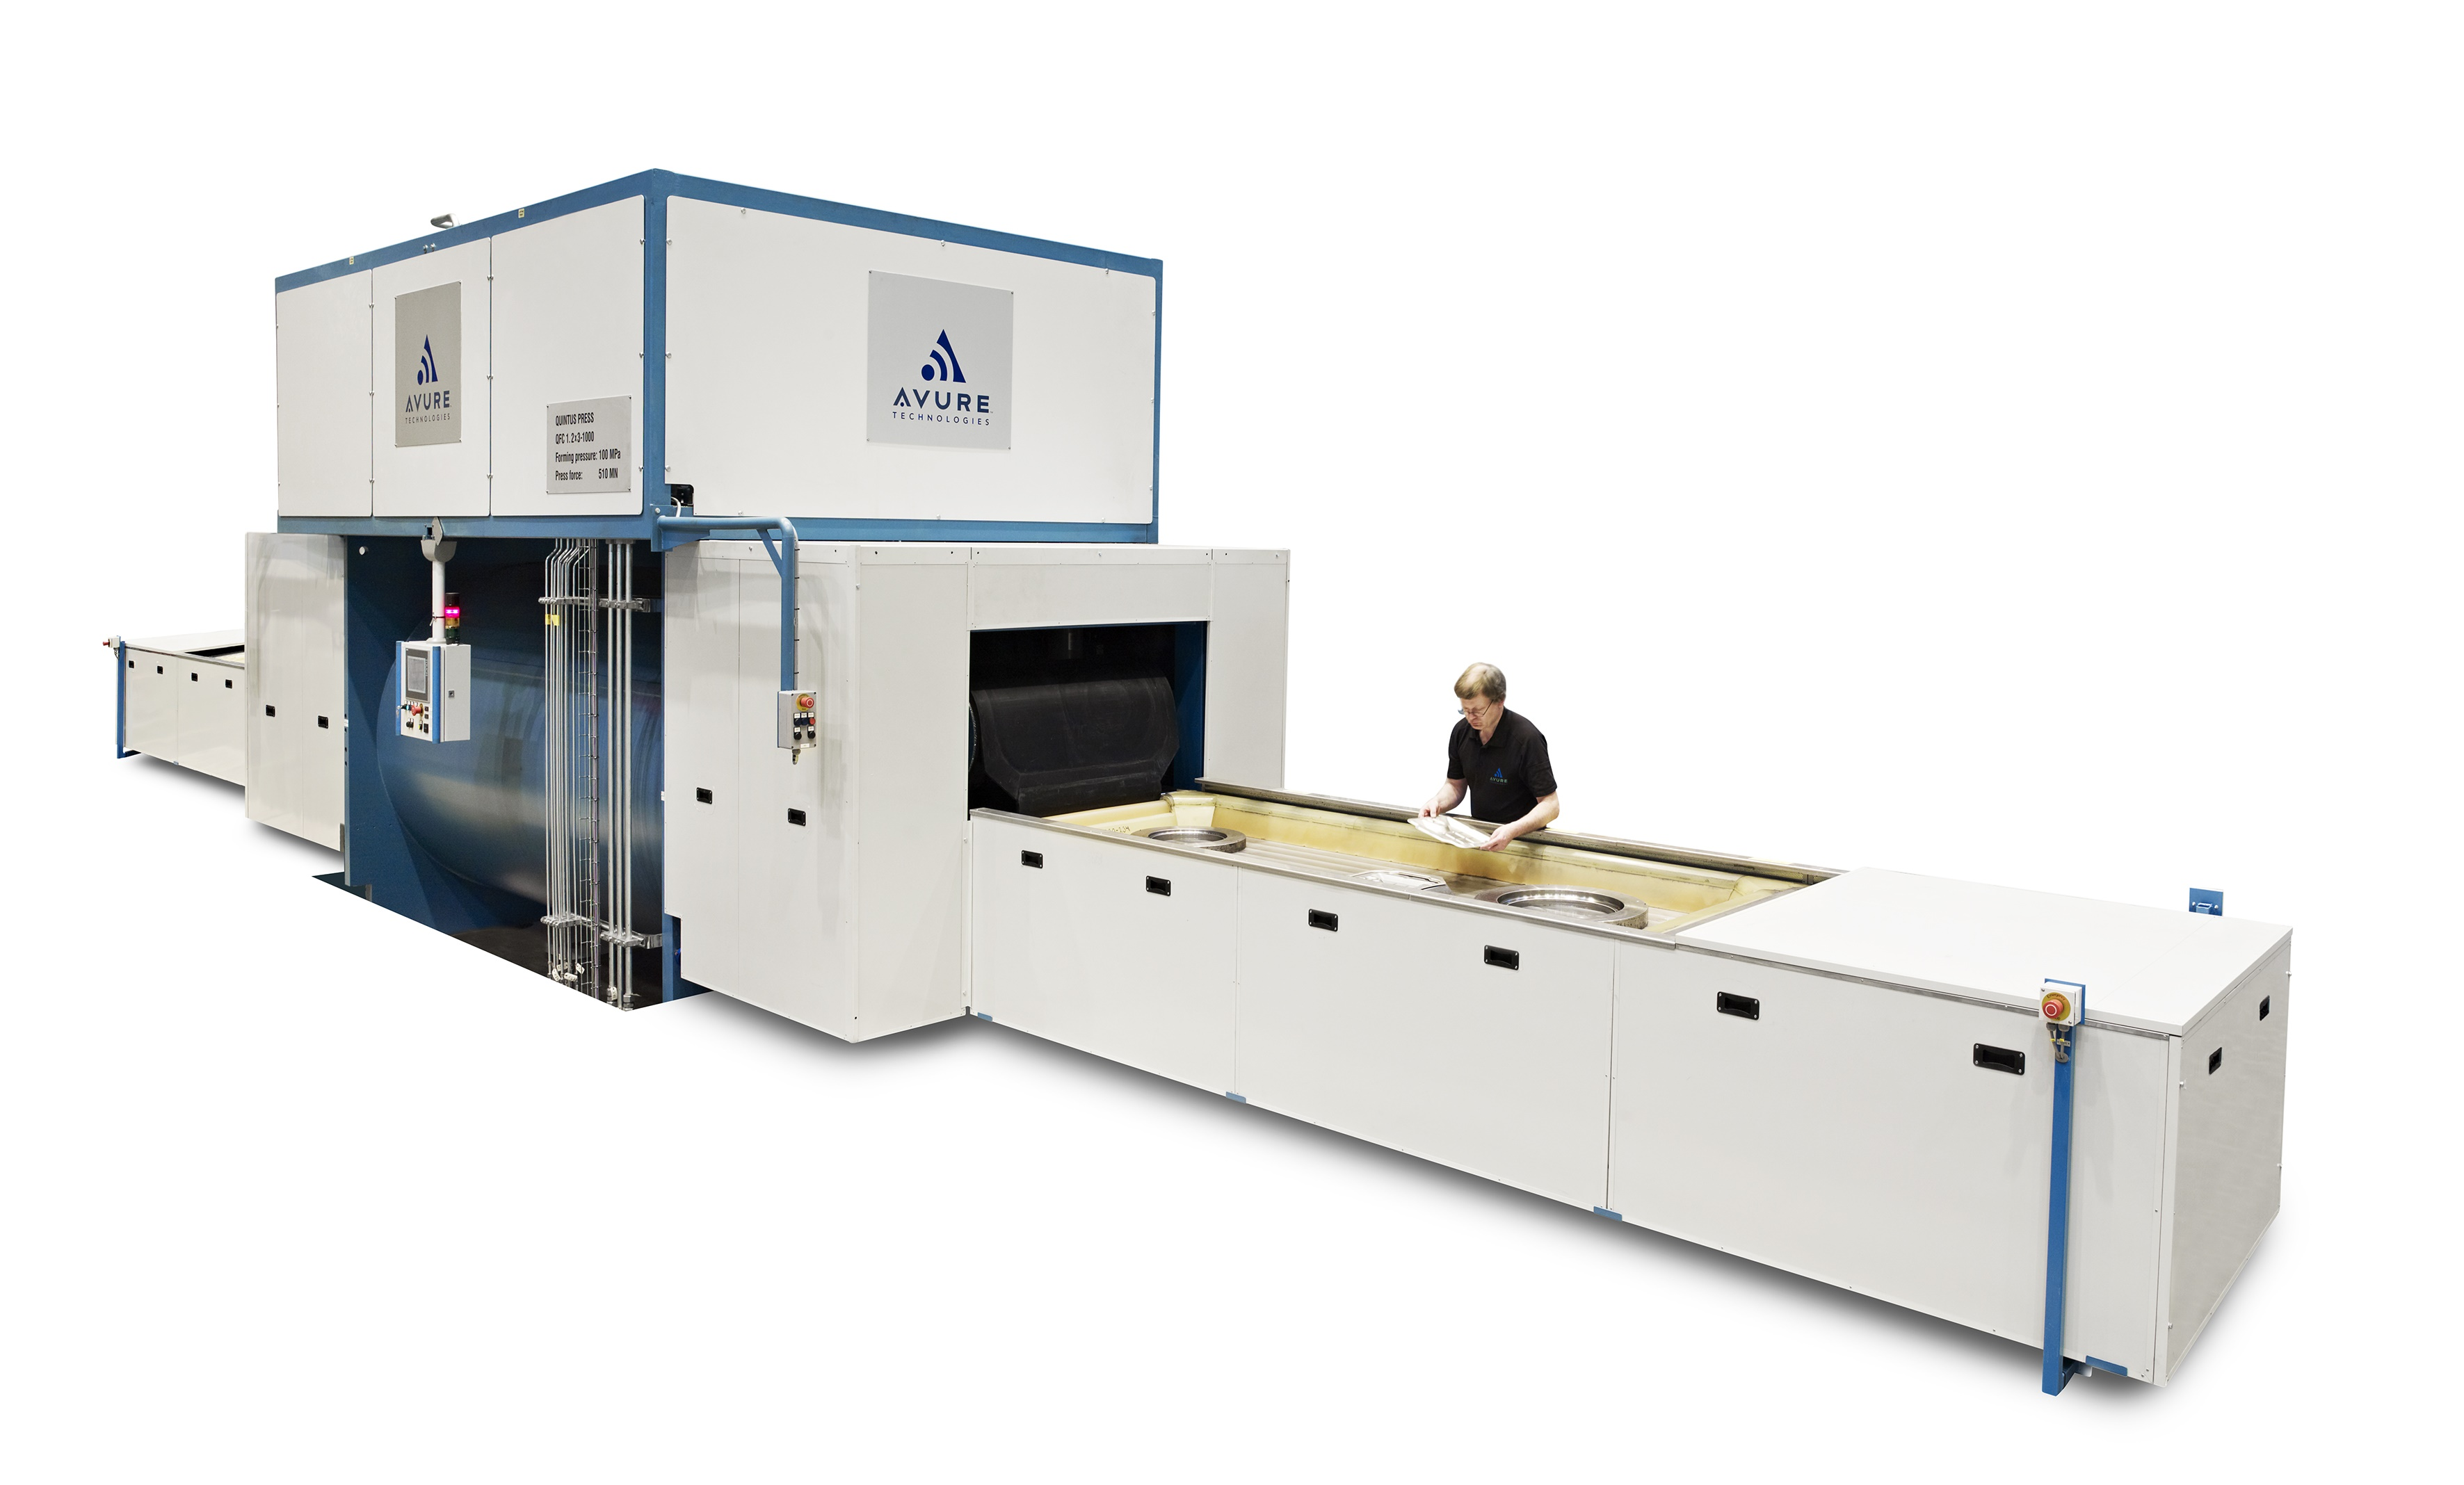 Two Chinese Suppliers Choose Avure Flexform Press For